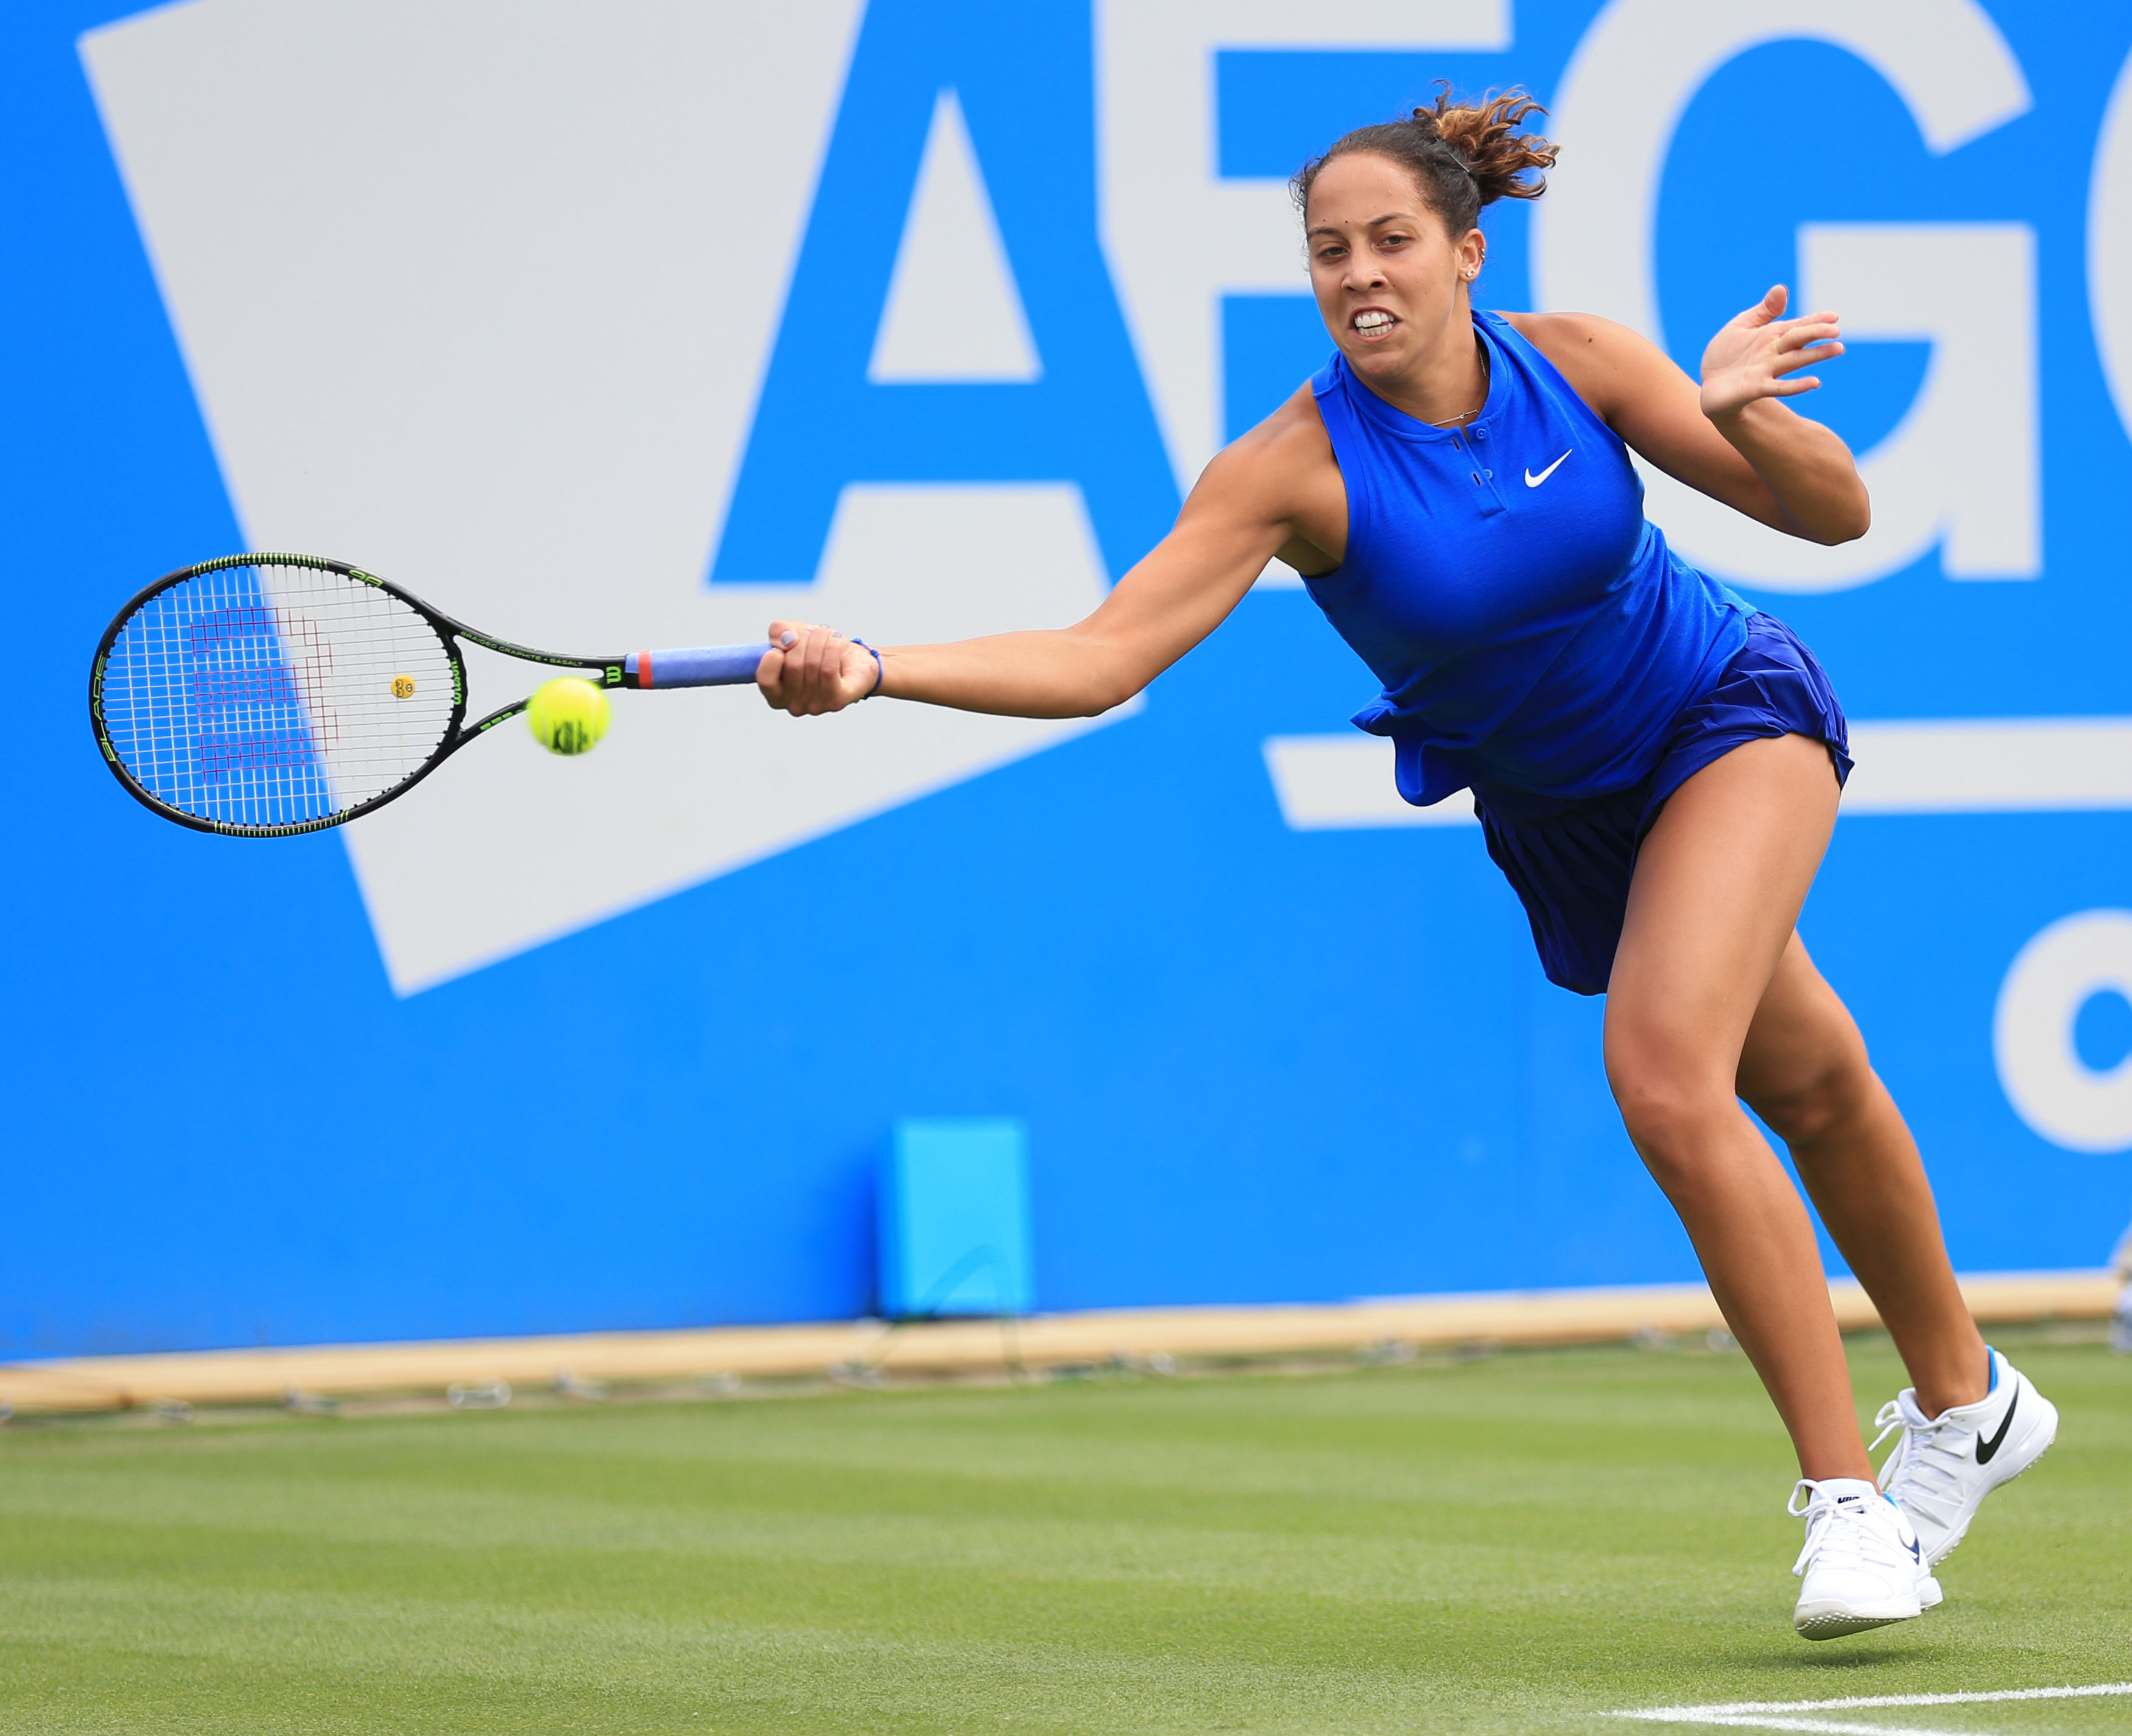 Madison Keys of the US   plays a return to Hungary's Timea Babos  during day one of the Birmingham Classic tennis tournament at the Edgbaston Priory, Birmingham central England  Monday June 13, 2016. (Nigel French/PA via AP) UNITED KINGDOM OUT  NO SALES N